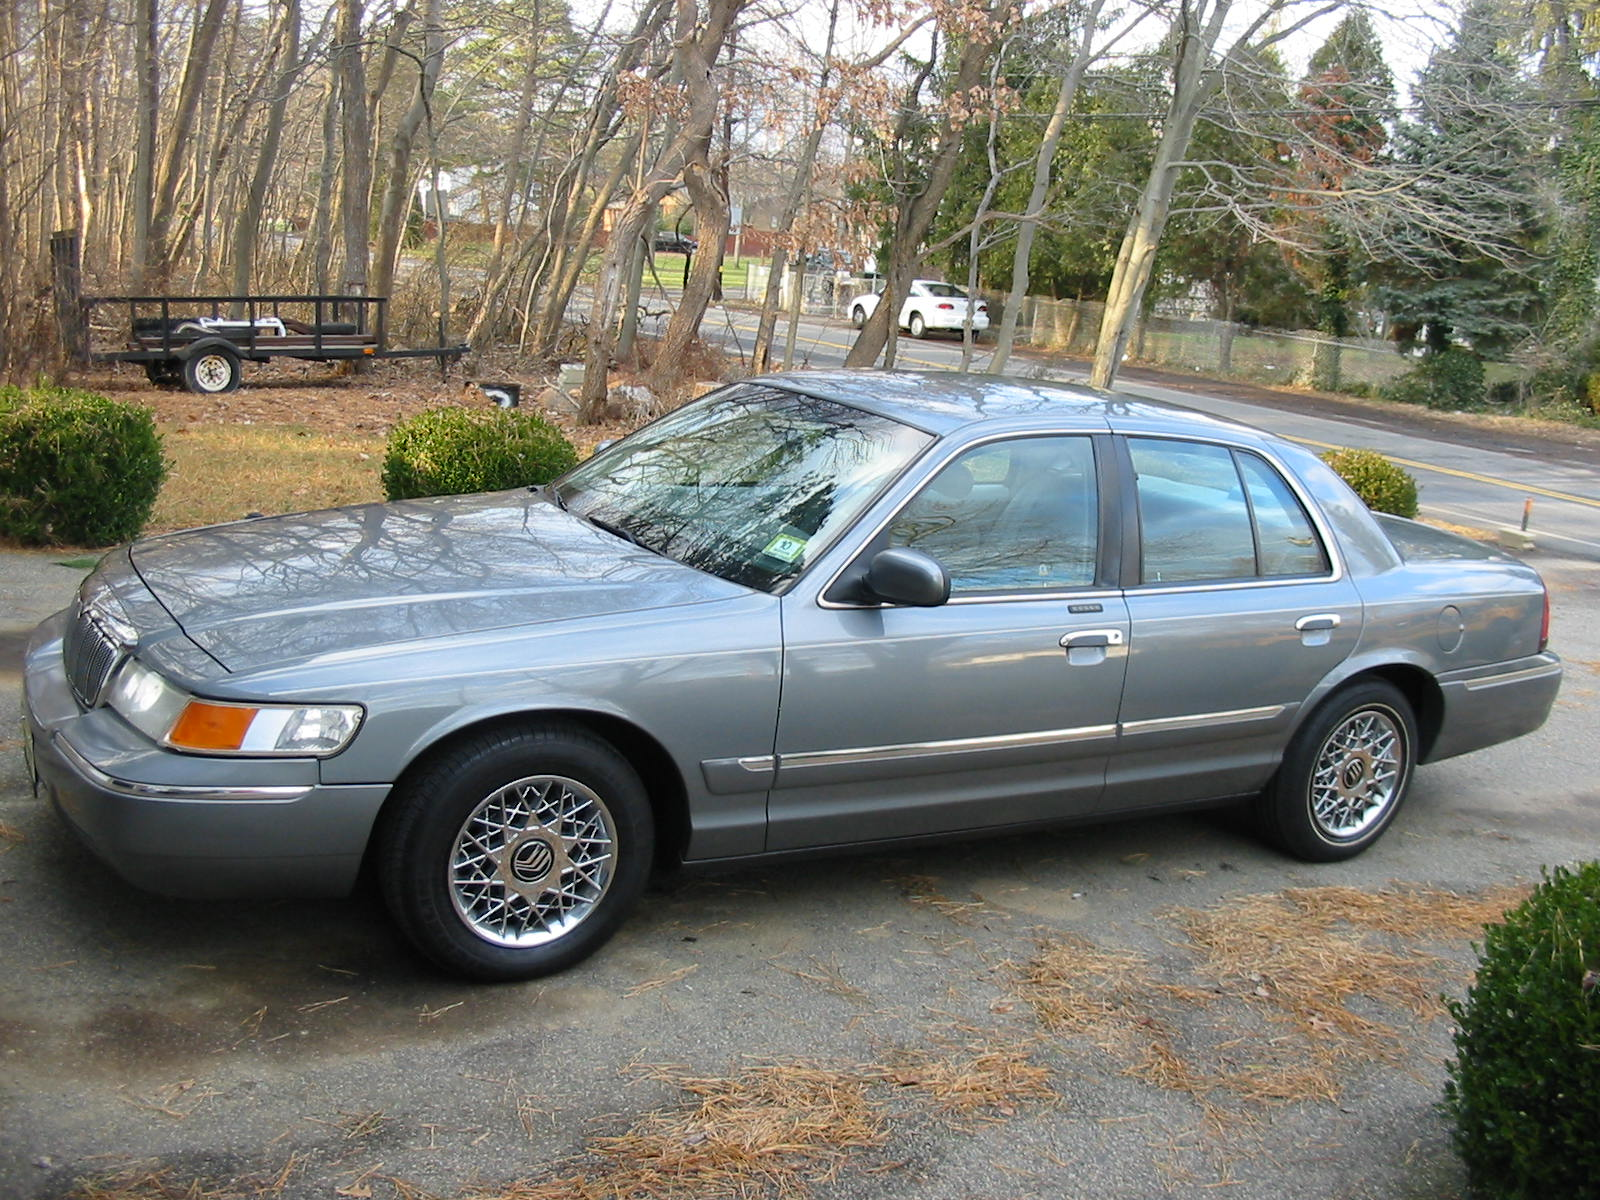 Picture of 1998 Mercury Grand Marquis 4 Dr GS Sedan